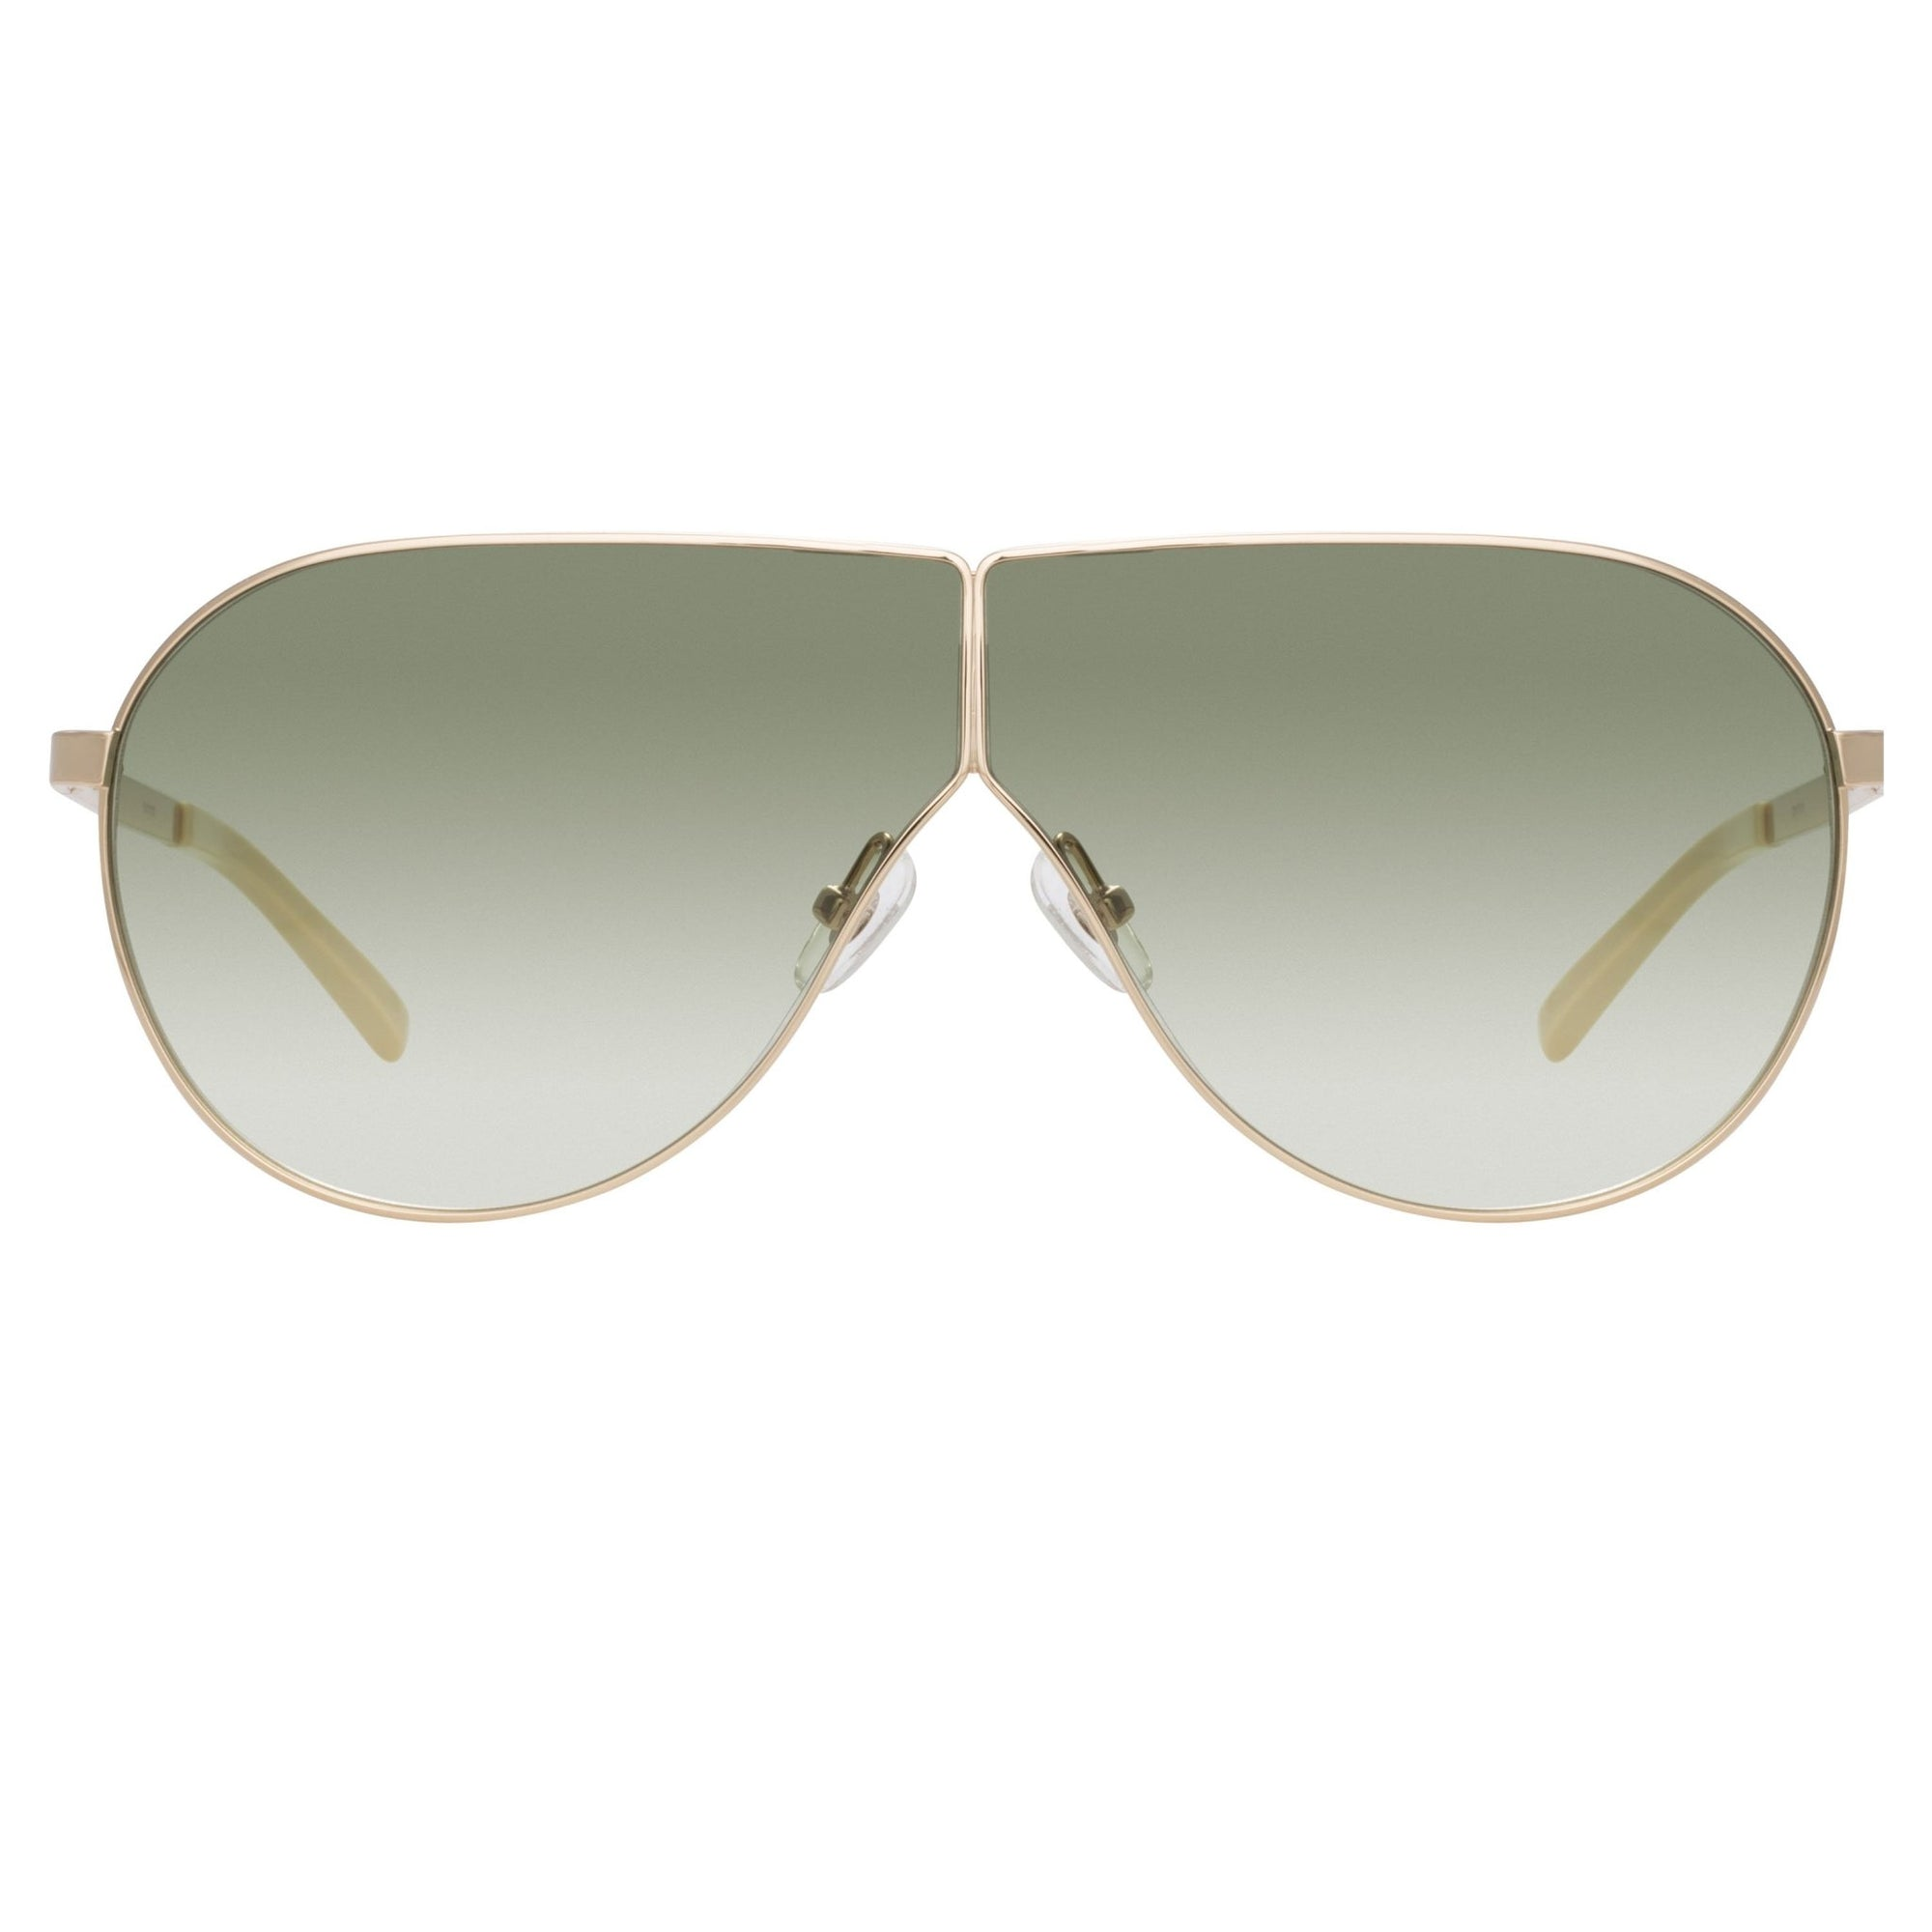 Phillip Lim Sunglasses Women's Shield Shape Light Gold CAT2 Green Gradient Lenses PL171C12SUN - Watches & Crystals